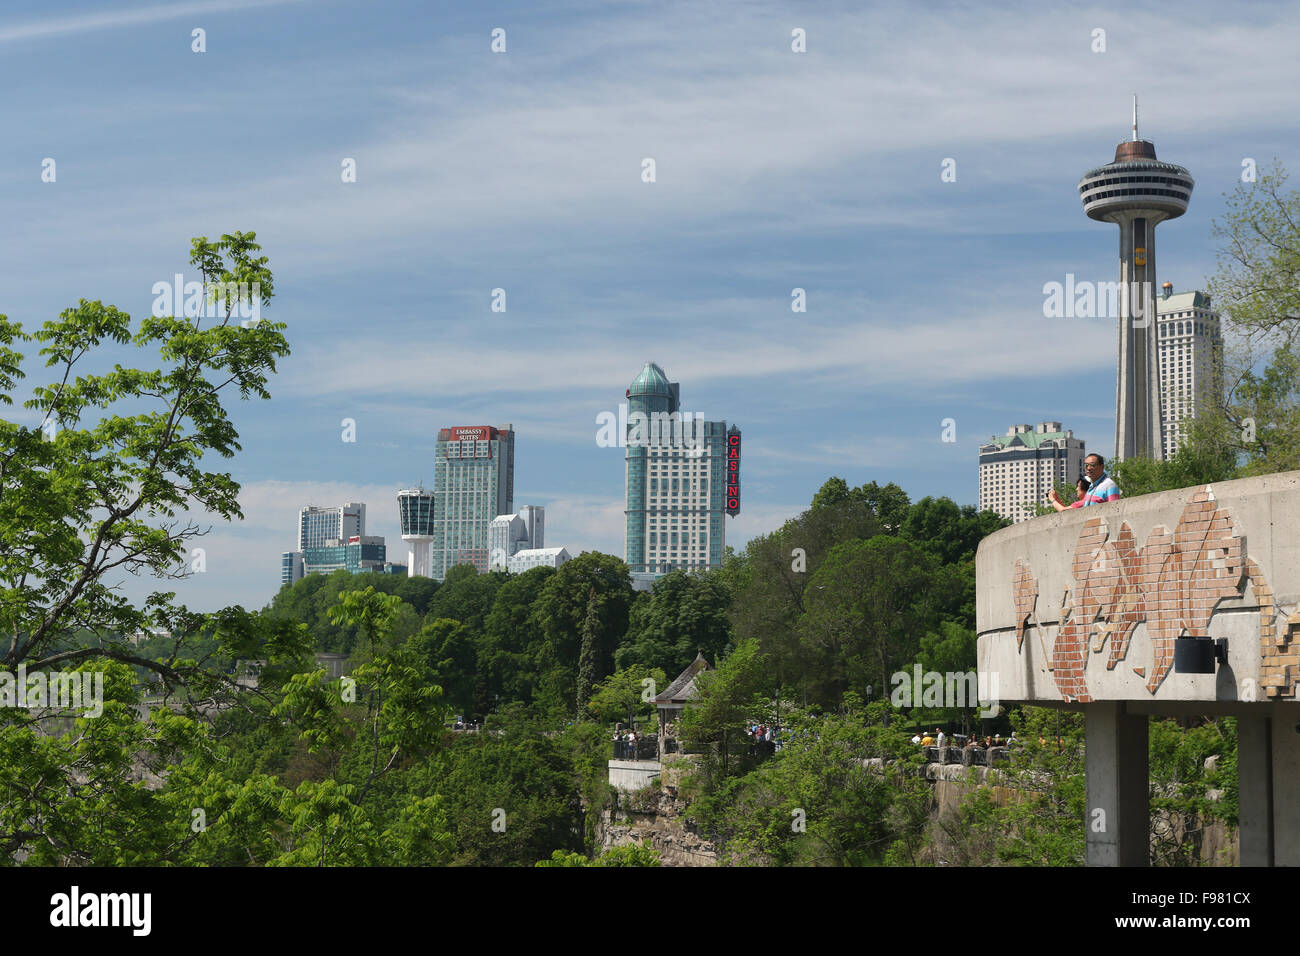 Grand River Canada Stock Photos & Grand River Canada Stock Images ...